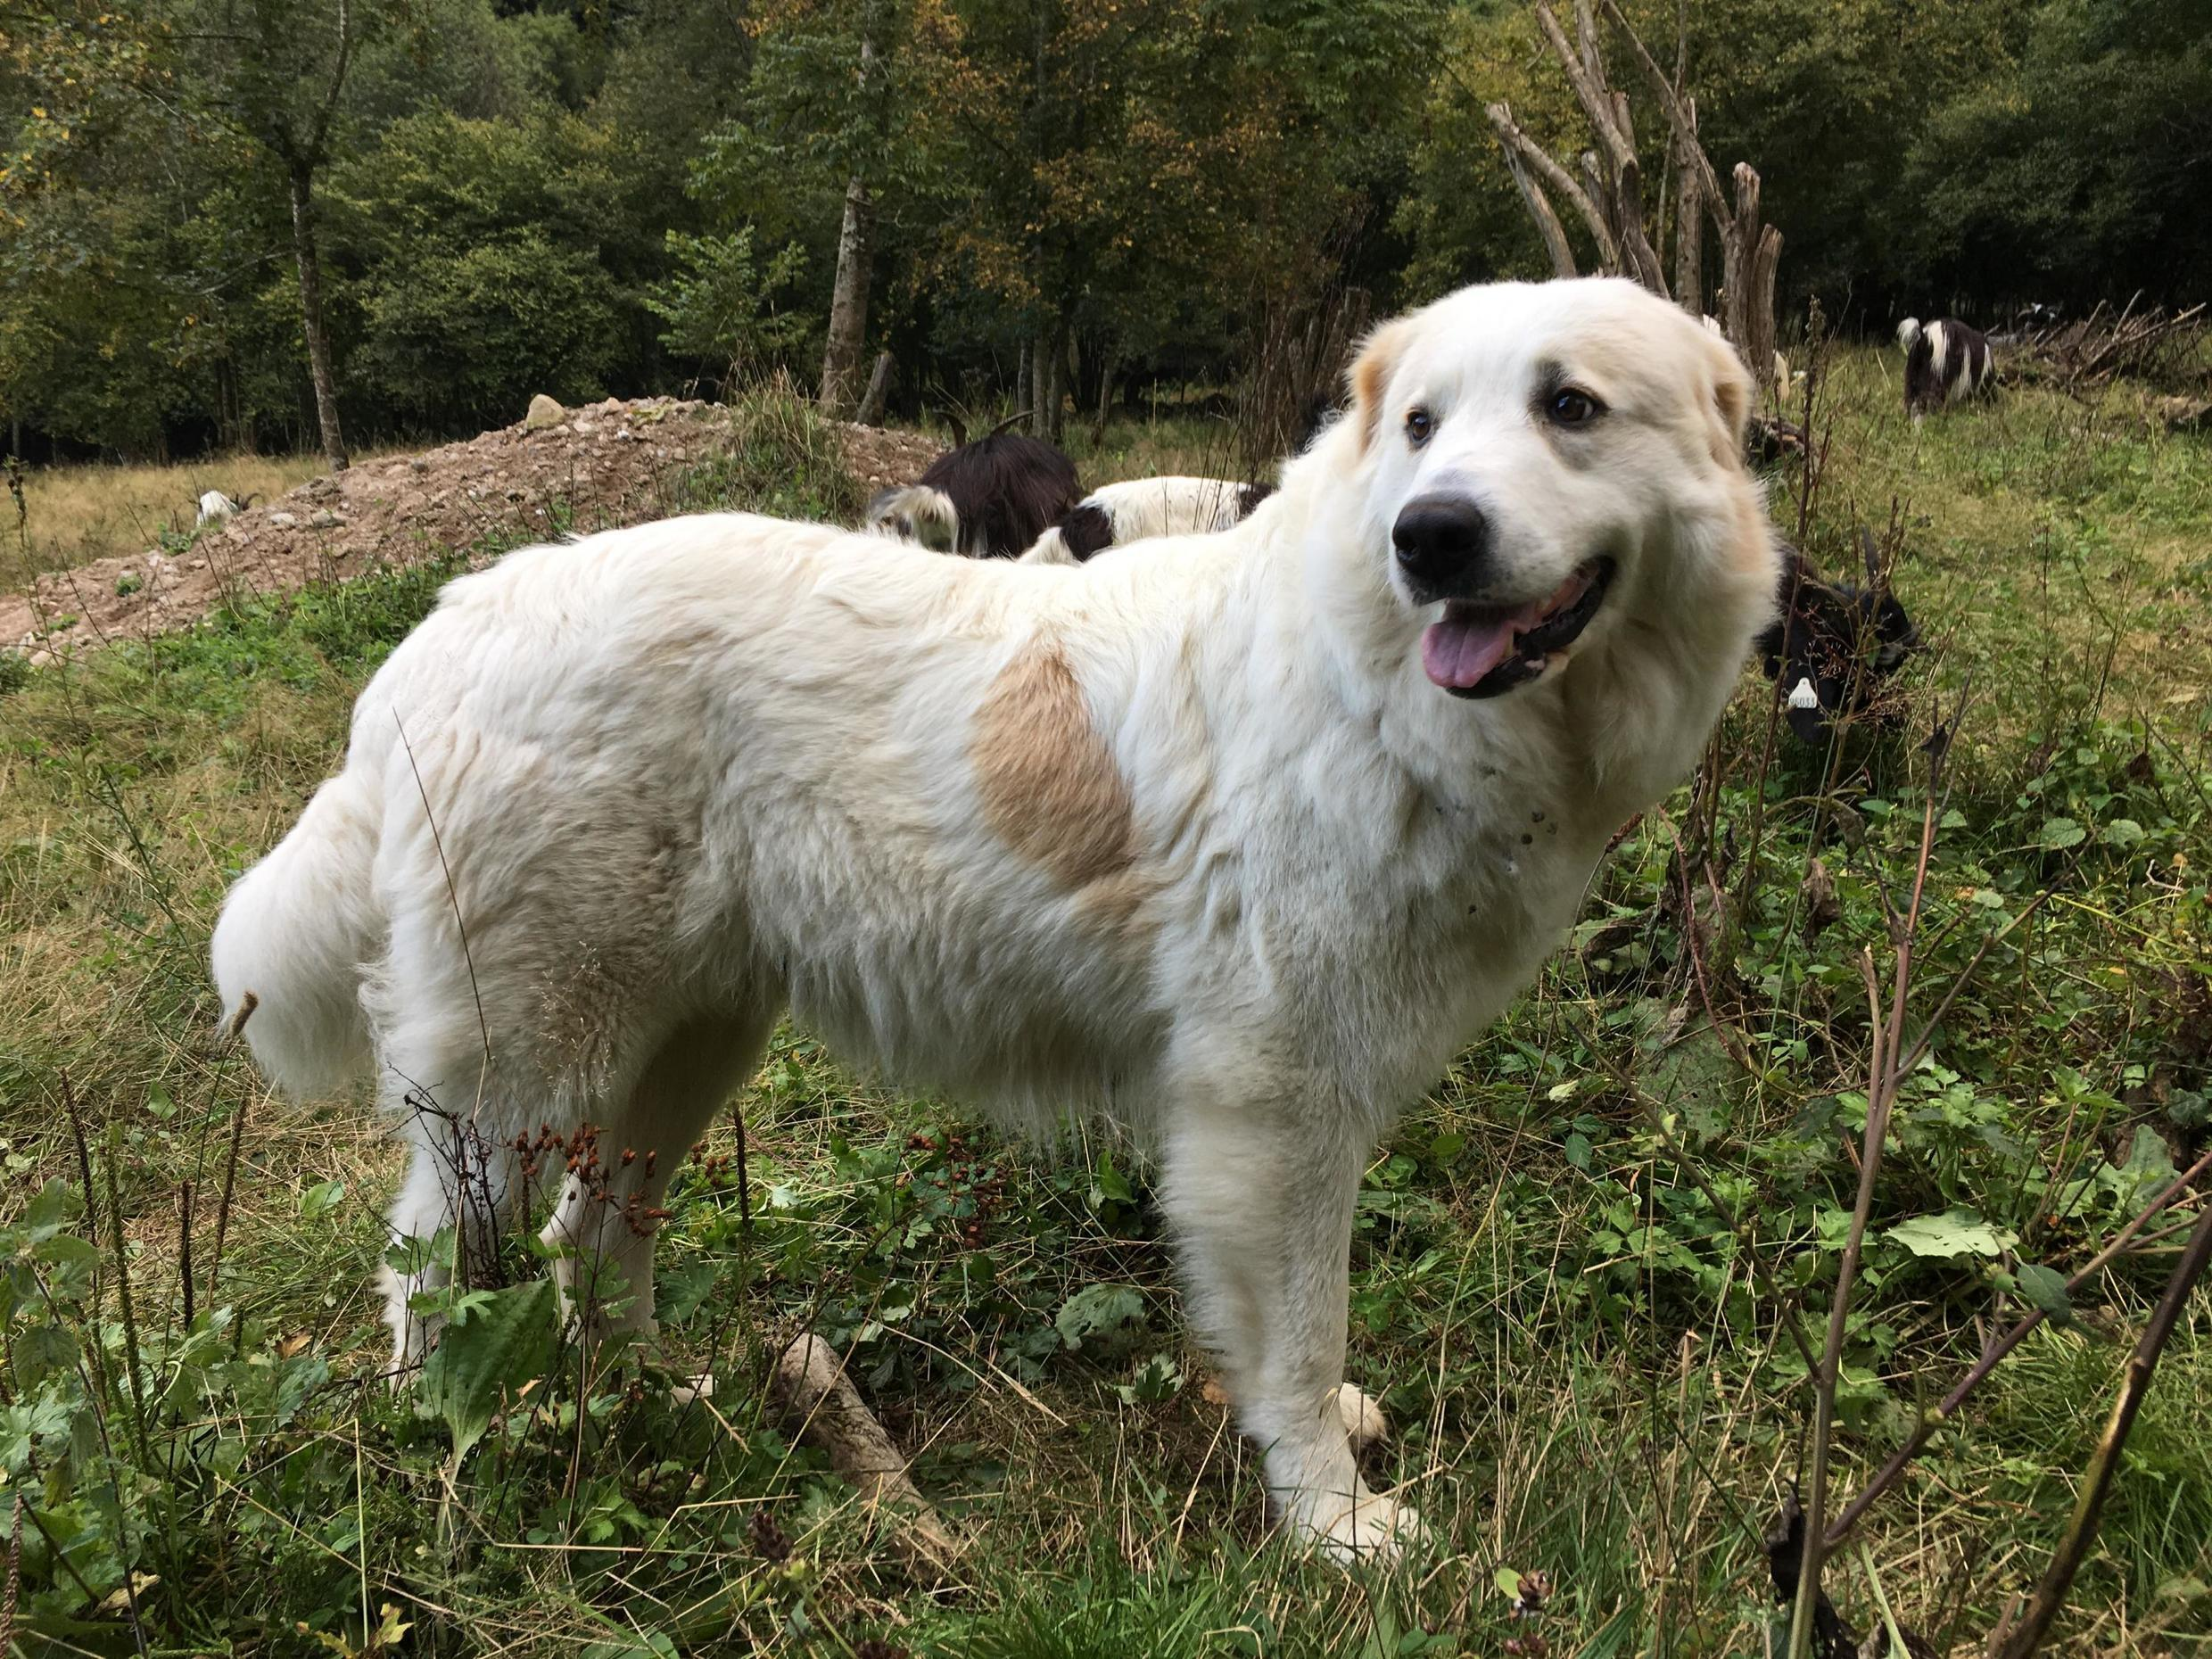 Great Pyrénées dogs are recognisable by their large size, white coats and general calm demeanour – except when alerting shepherds to the presence of an intruder.